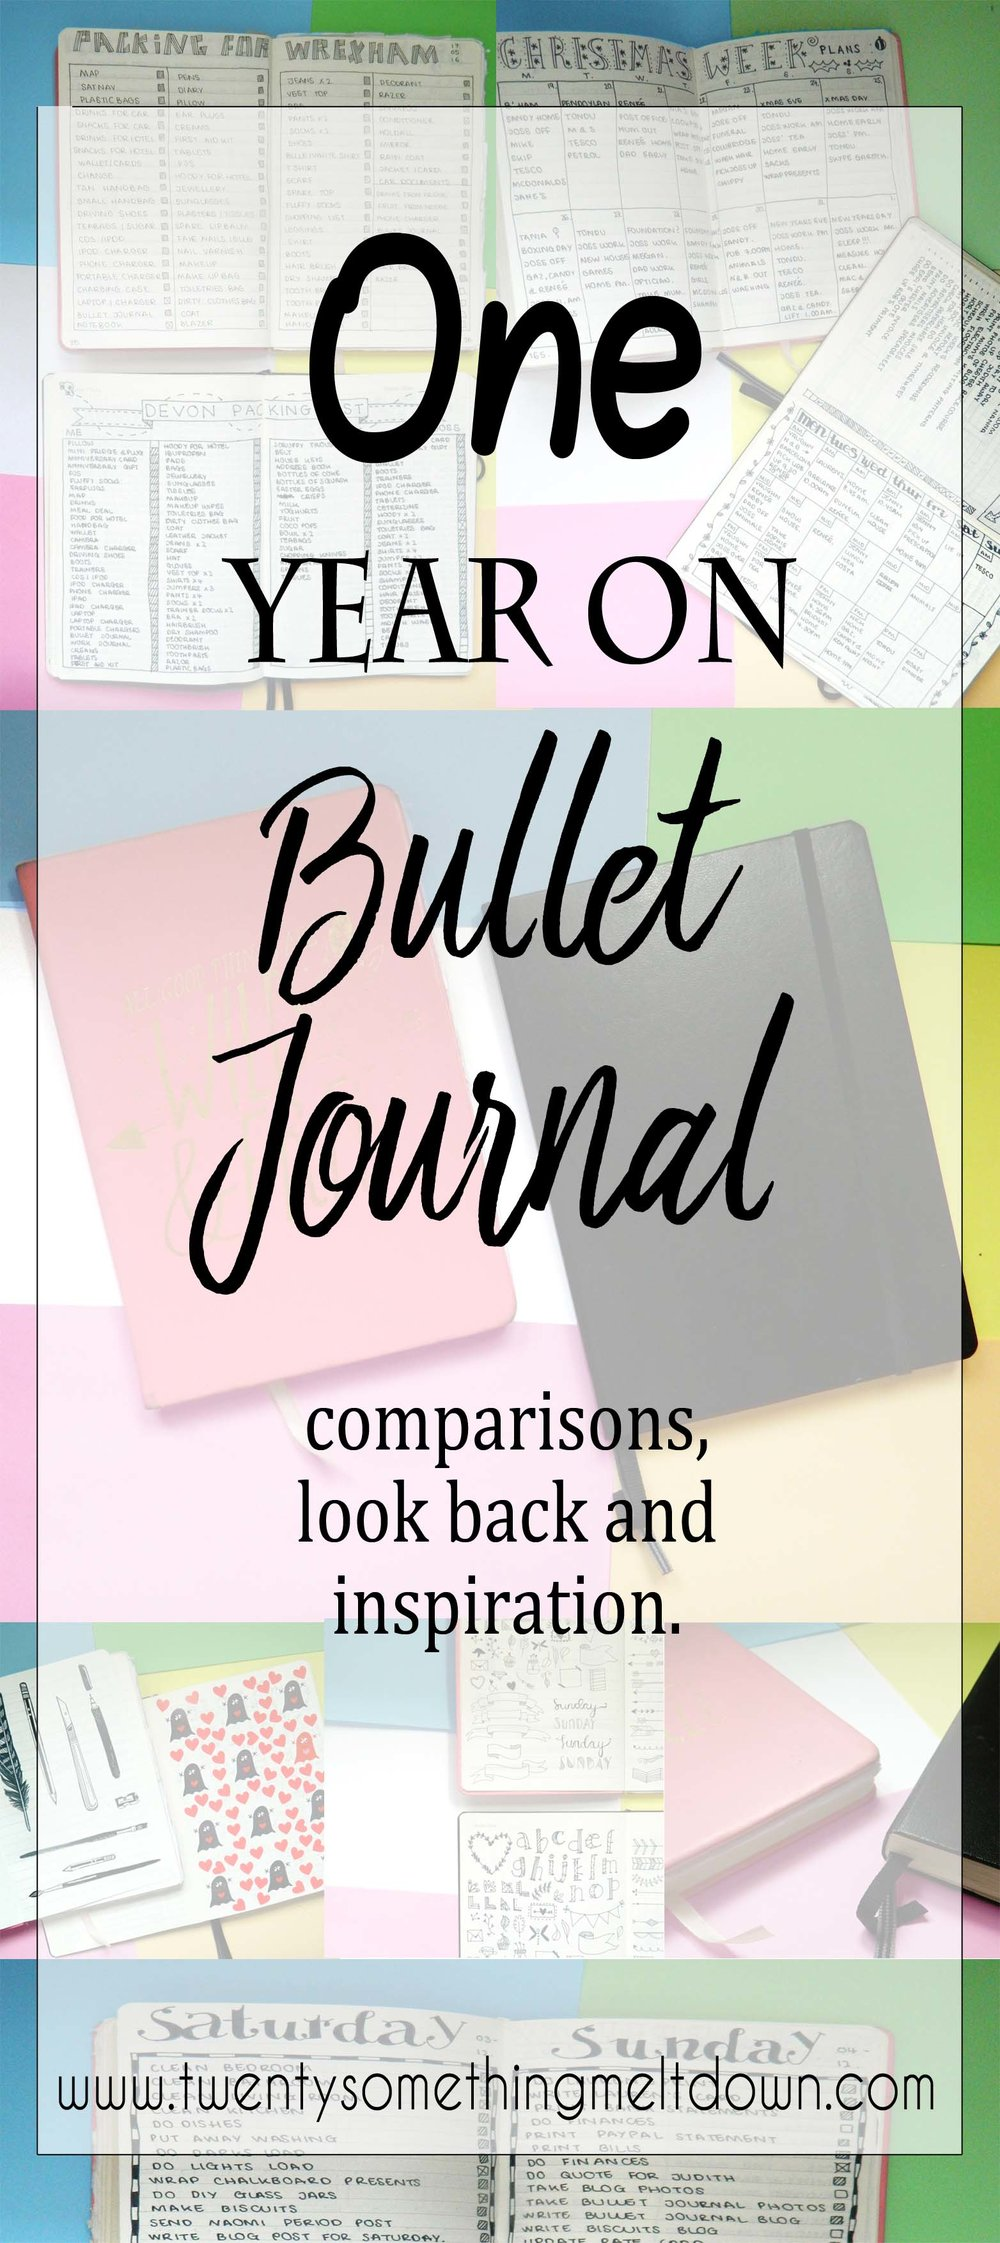 bulletjournalcomparison.jpg